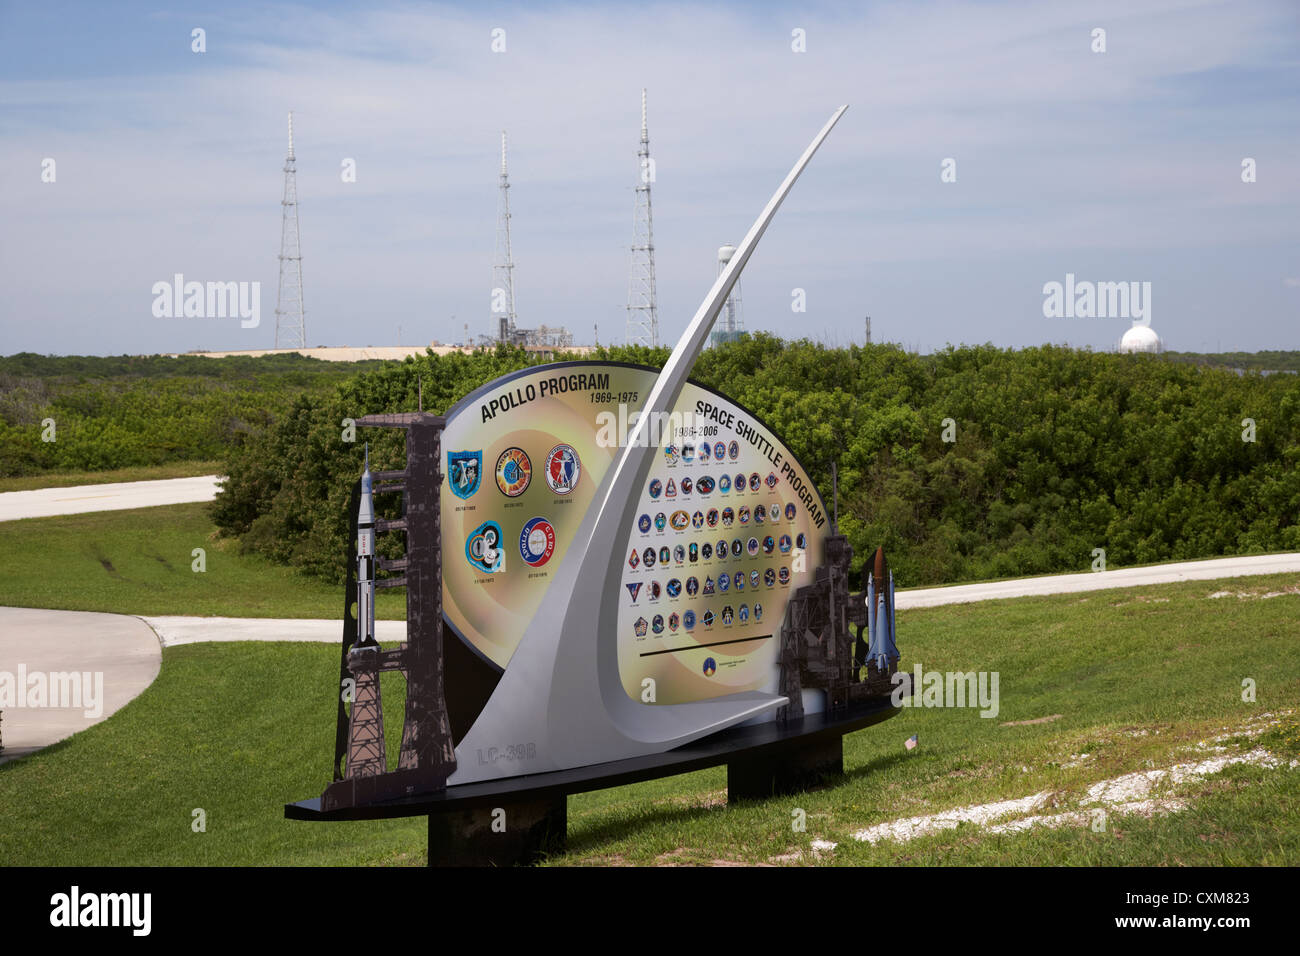 launch complex pad 39B with lightning conductors and display at the Kennedy Space Center Florida USA - Stock Image